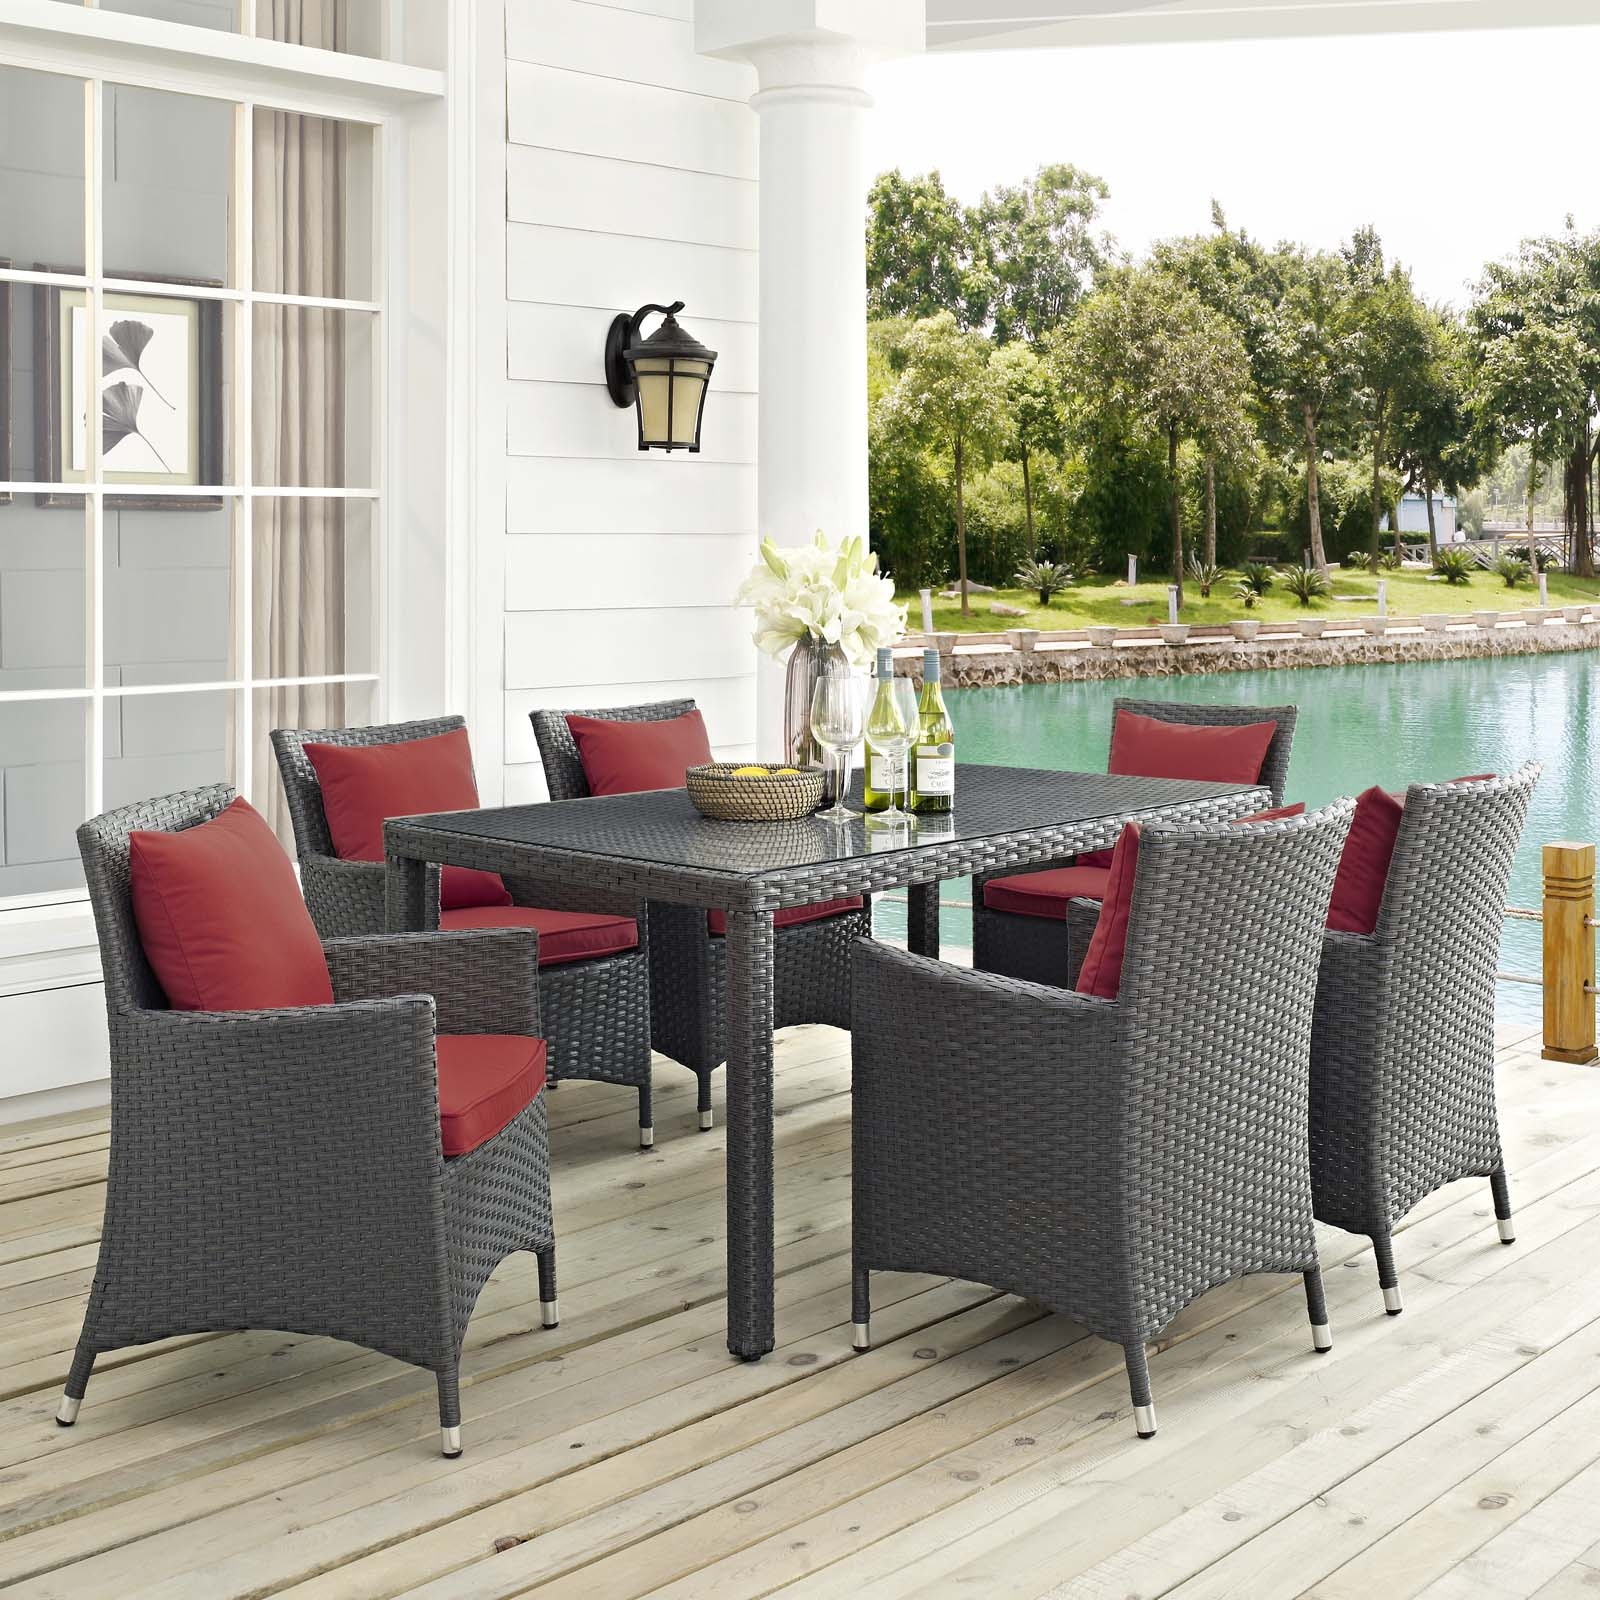 Sojourn 7 Piece Outdoor Patio Sunbrella® Dining Set in Canvas Red